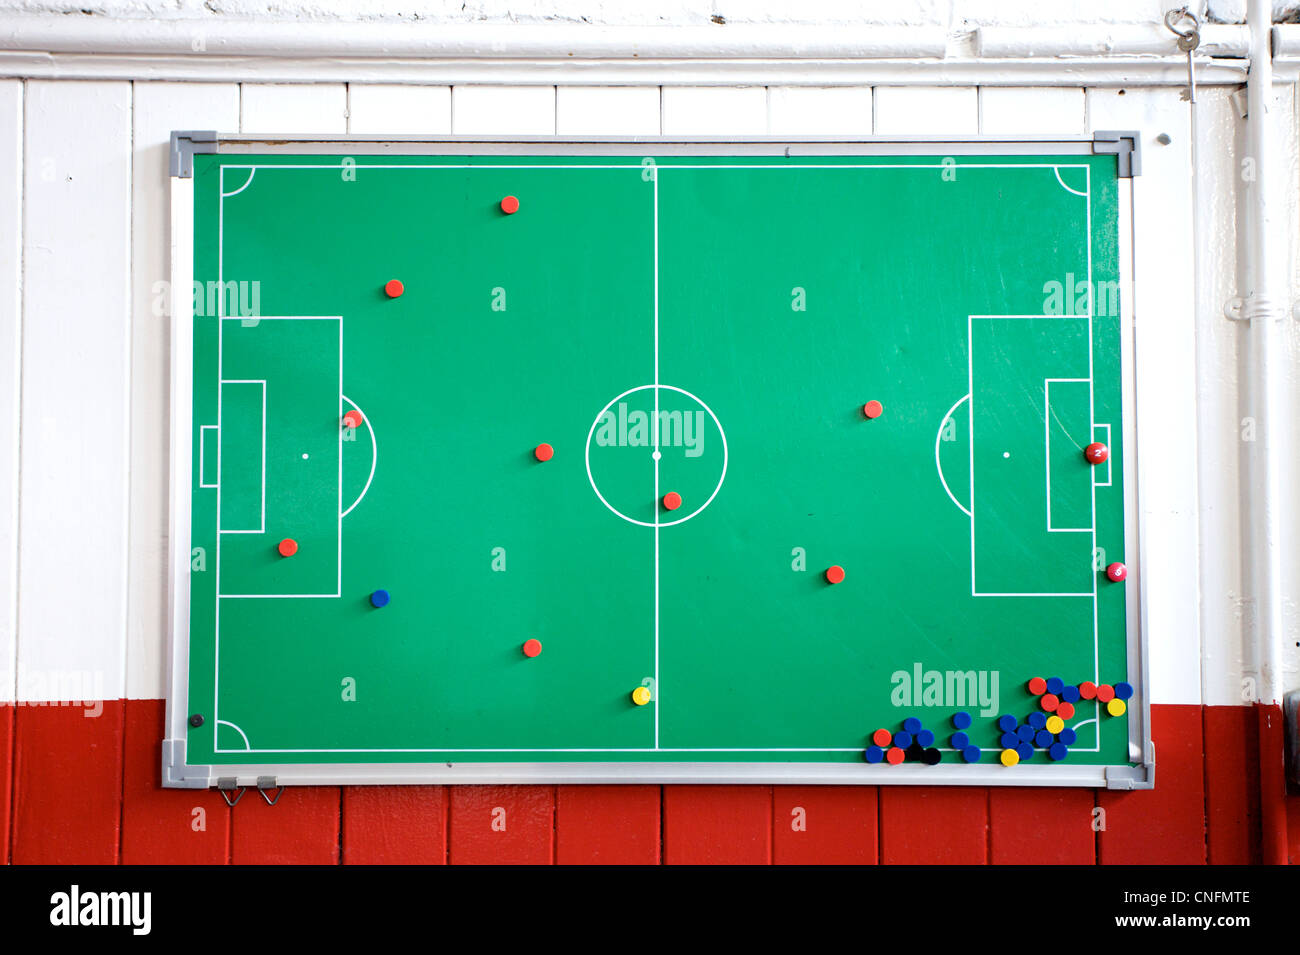 A football tactics board in the dressing room of a football stadium. - Stock Image